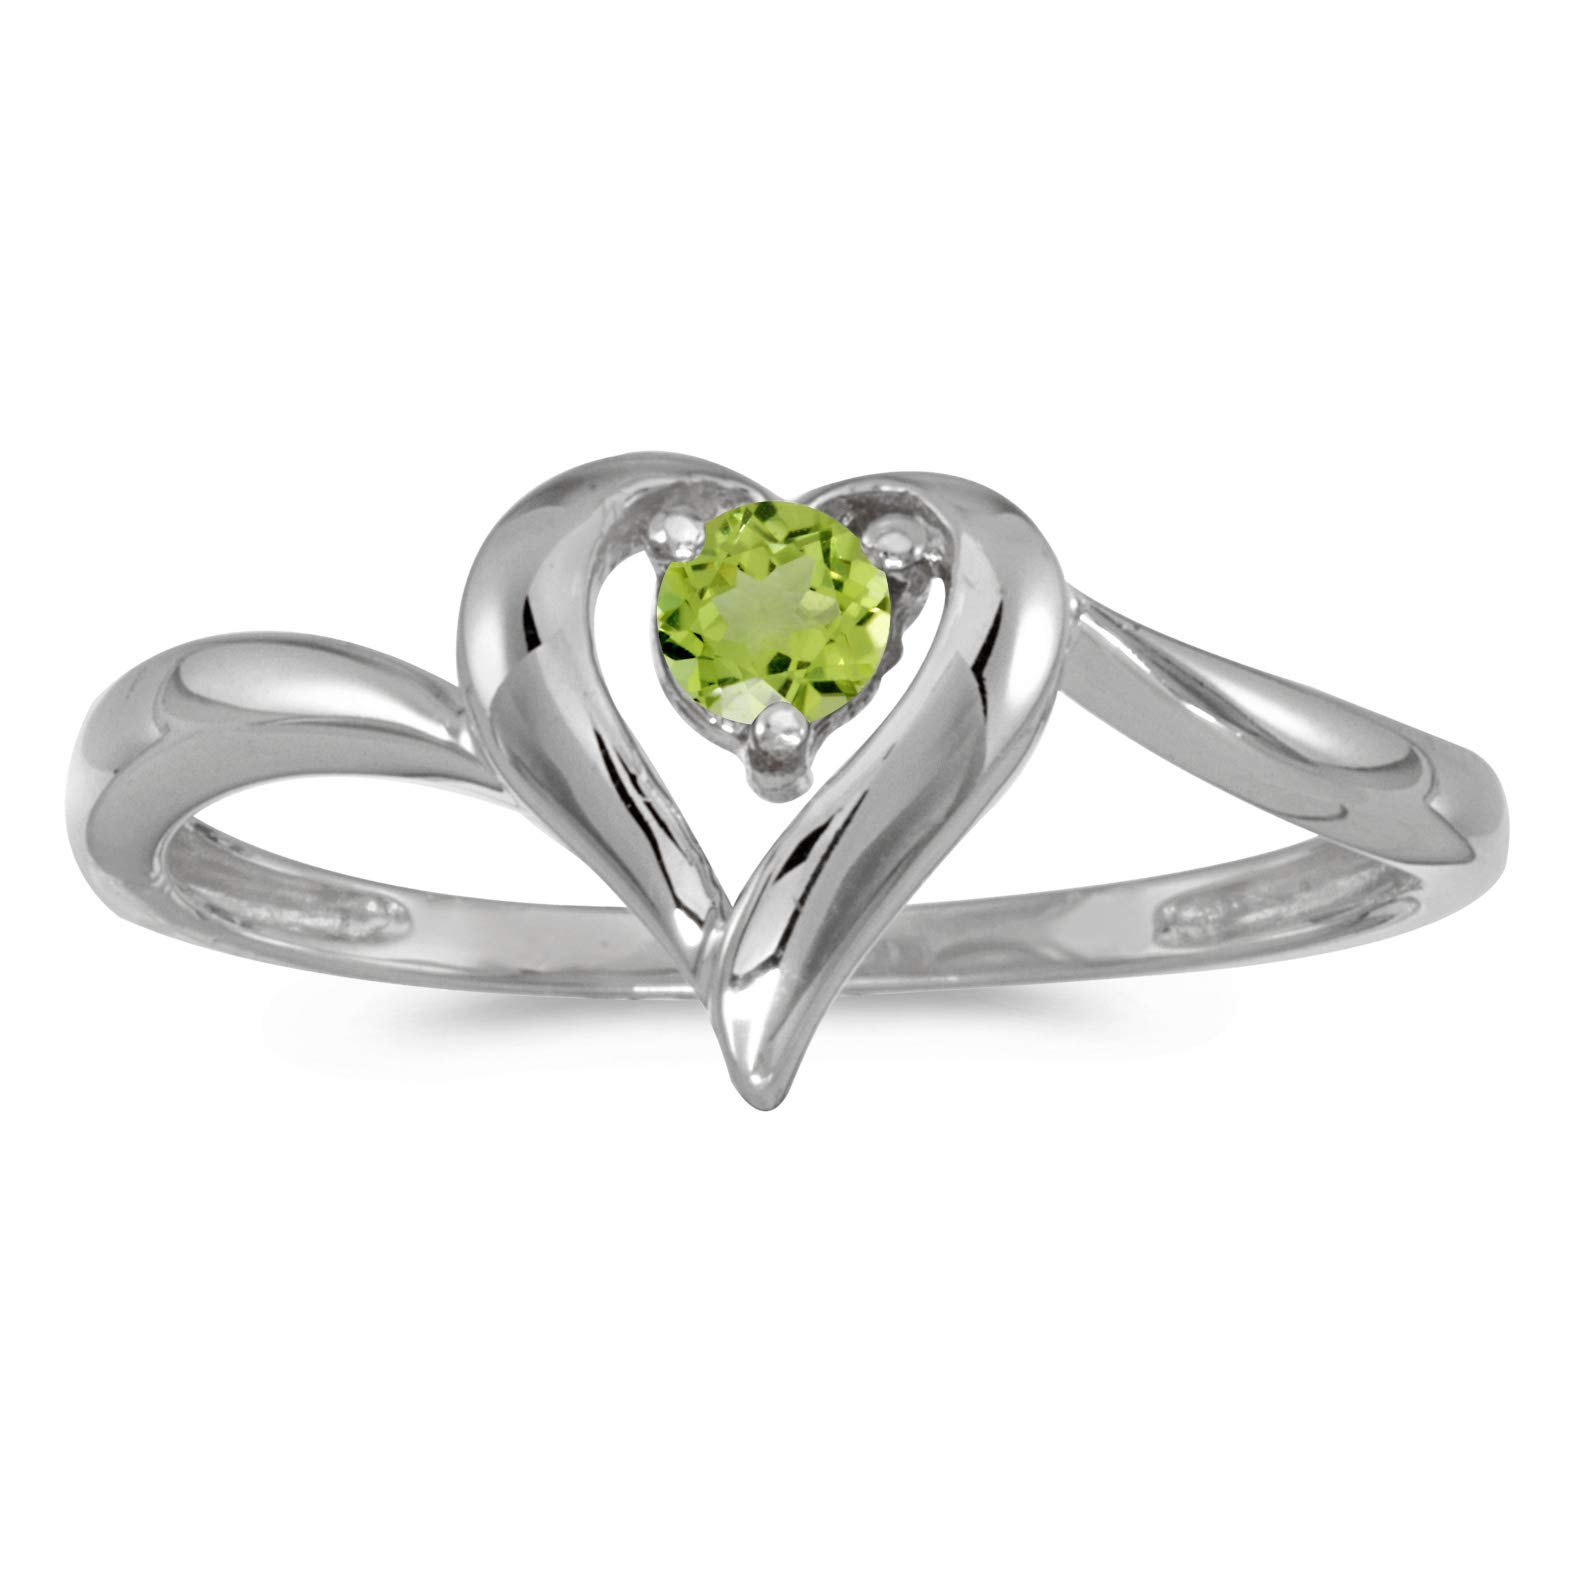 FB Jewels 10k White Gold Genuine Green Birthstone Solitaire Round Peridot Heart Wedding Engagement Statement Ring - Size 7 (1/4 Cttw.)